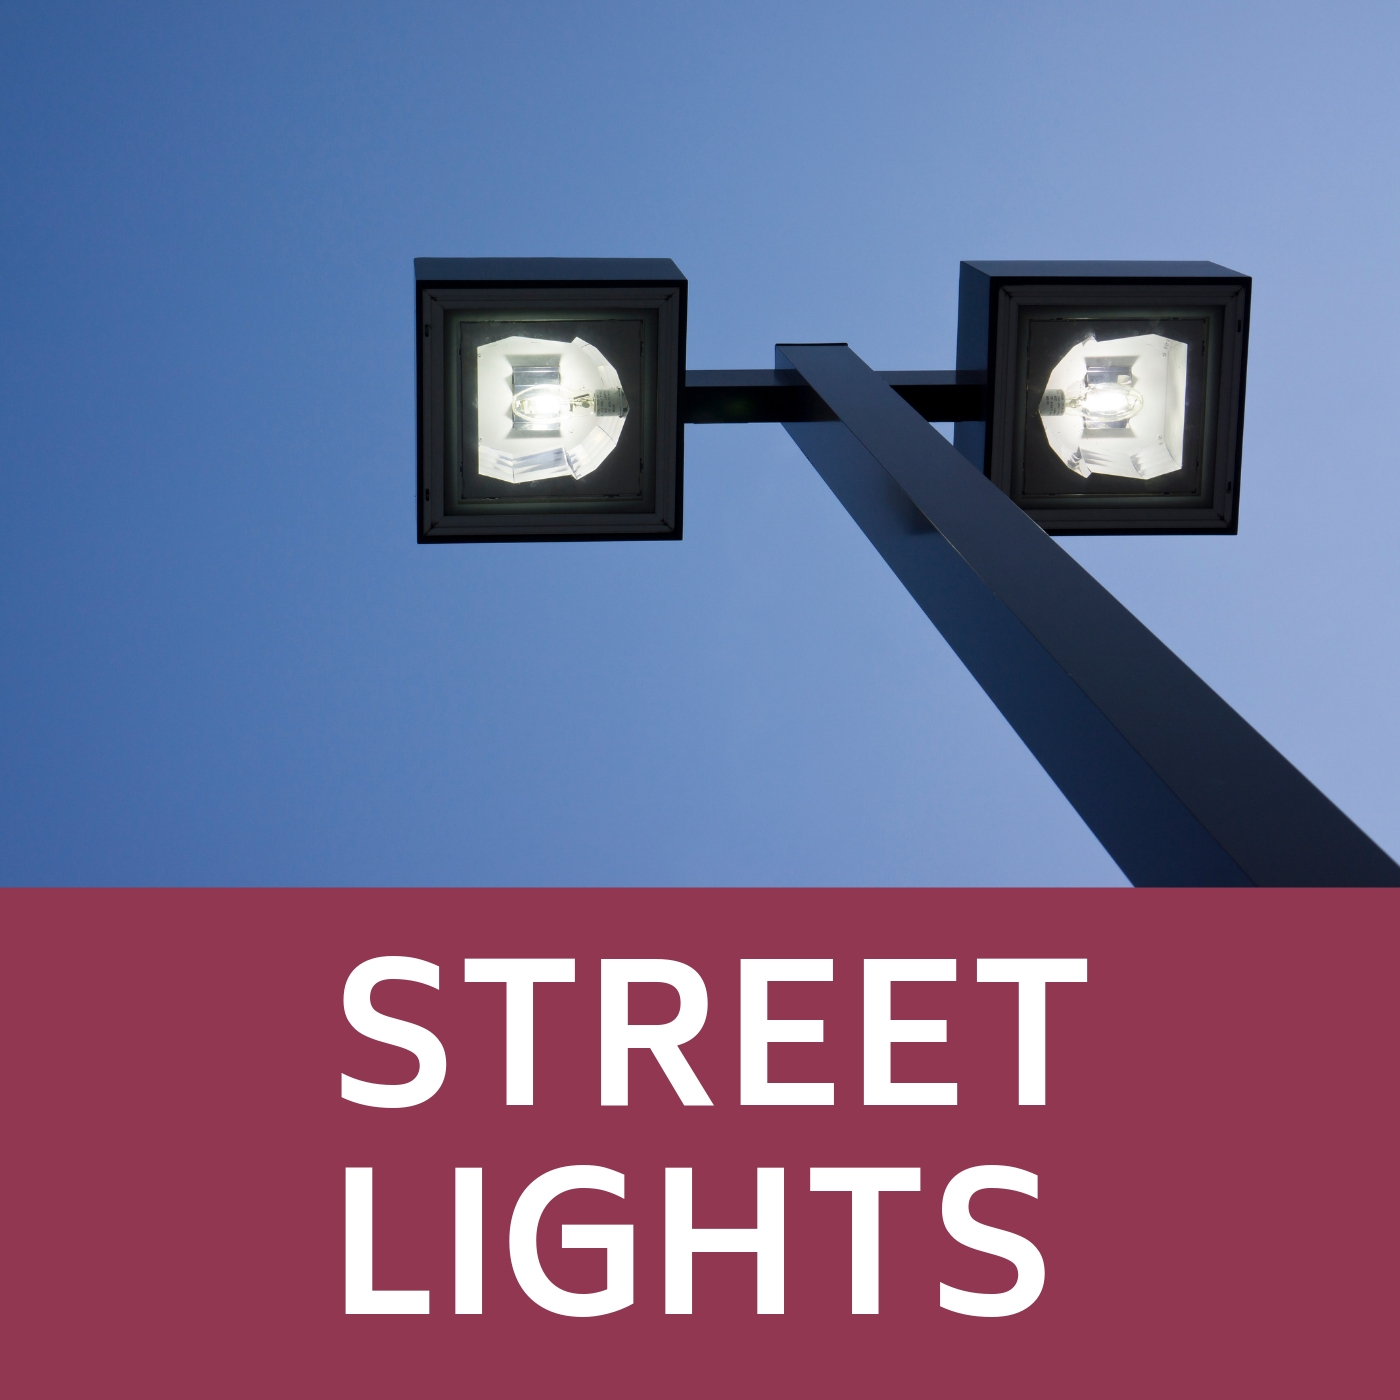 Street Lights Icon that opens the link to a webpage with street light information